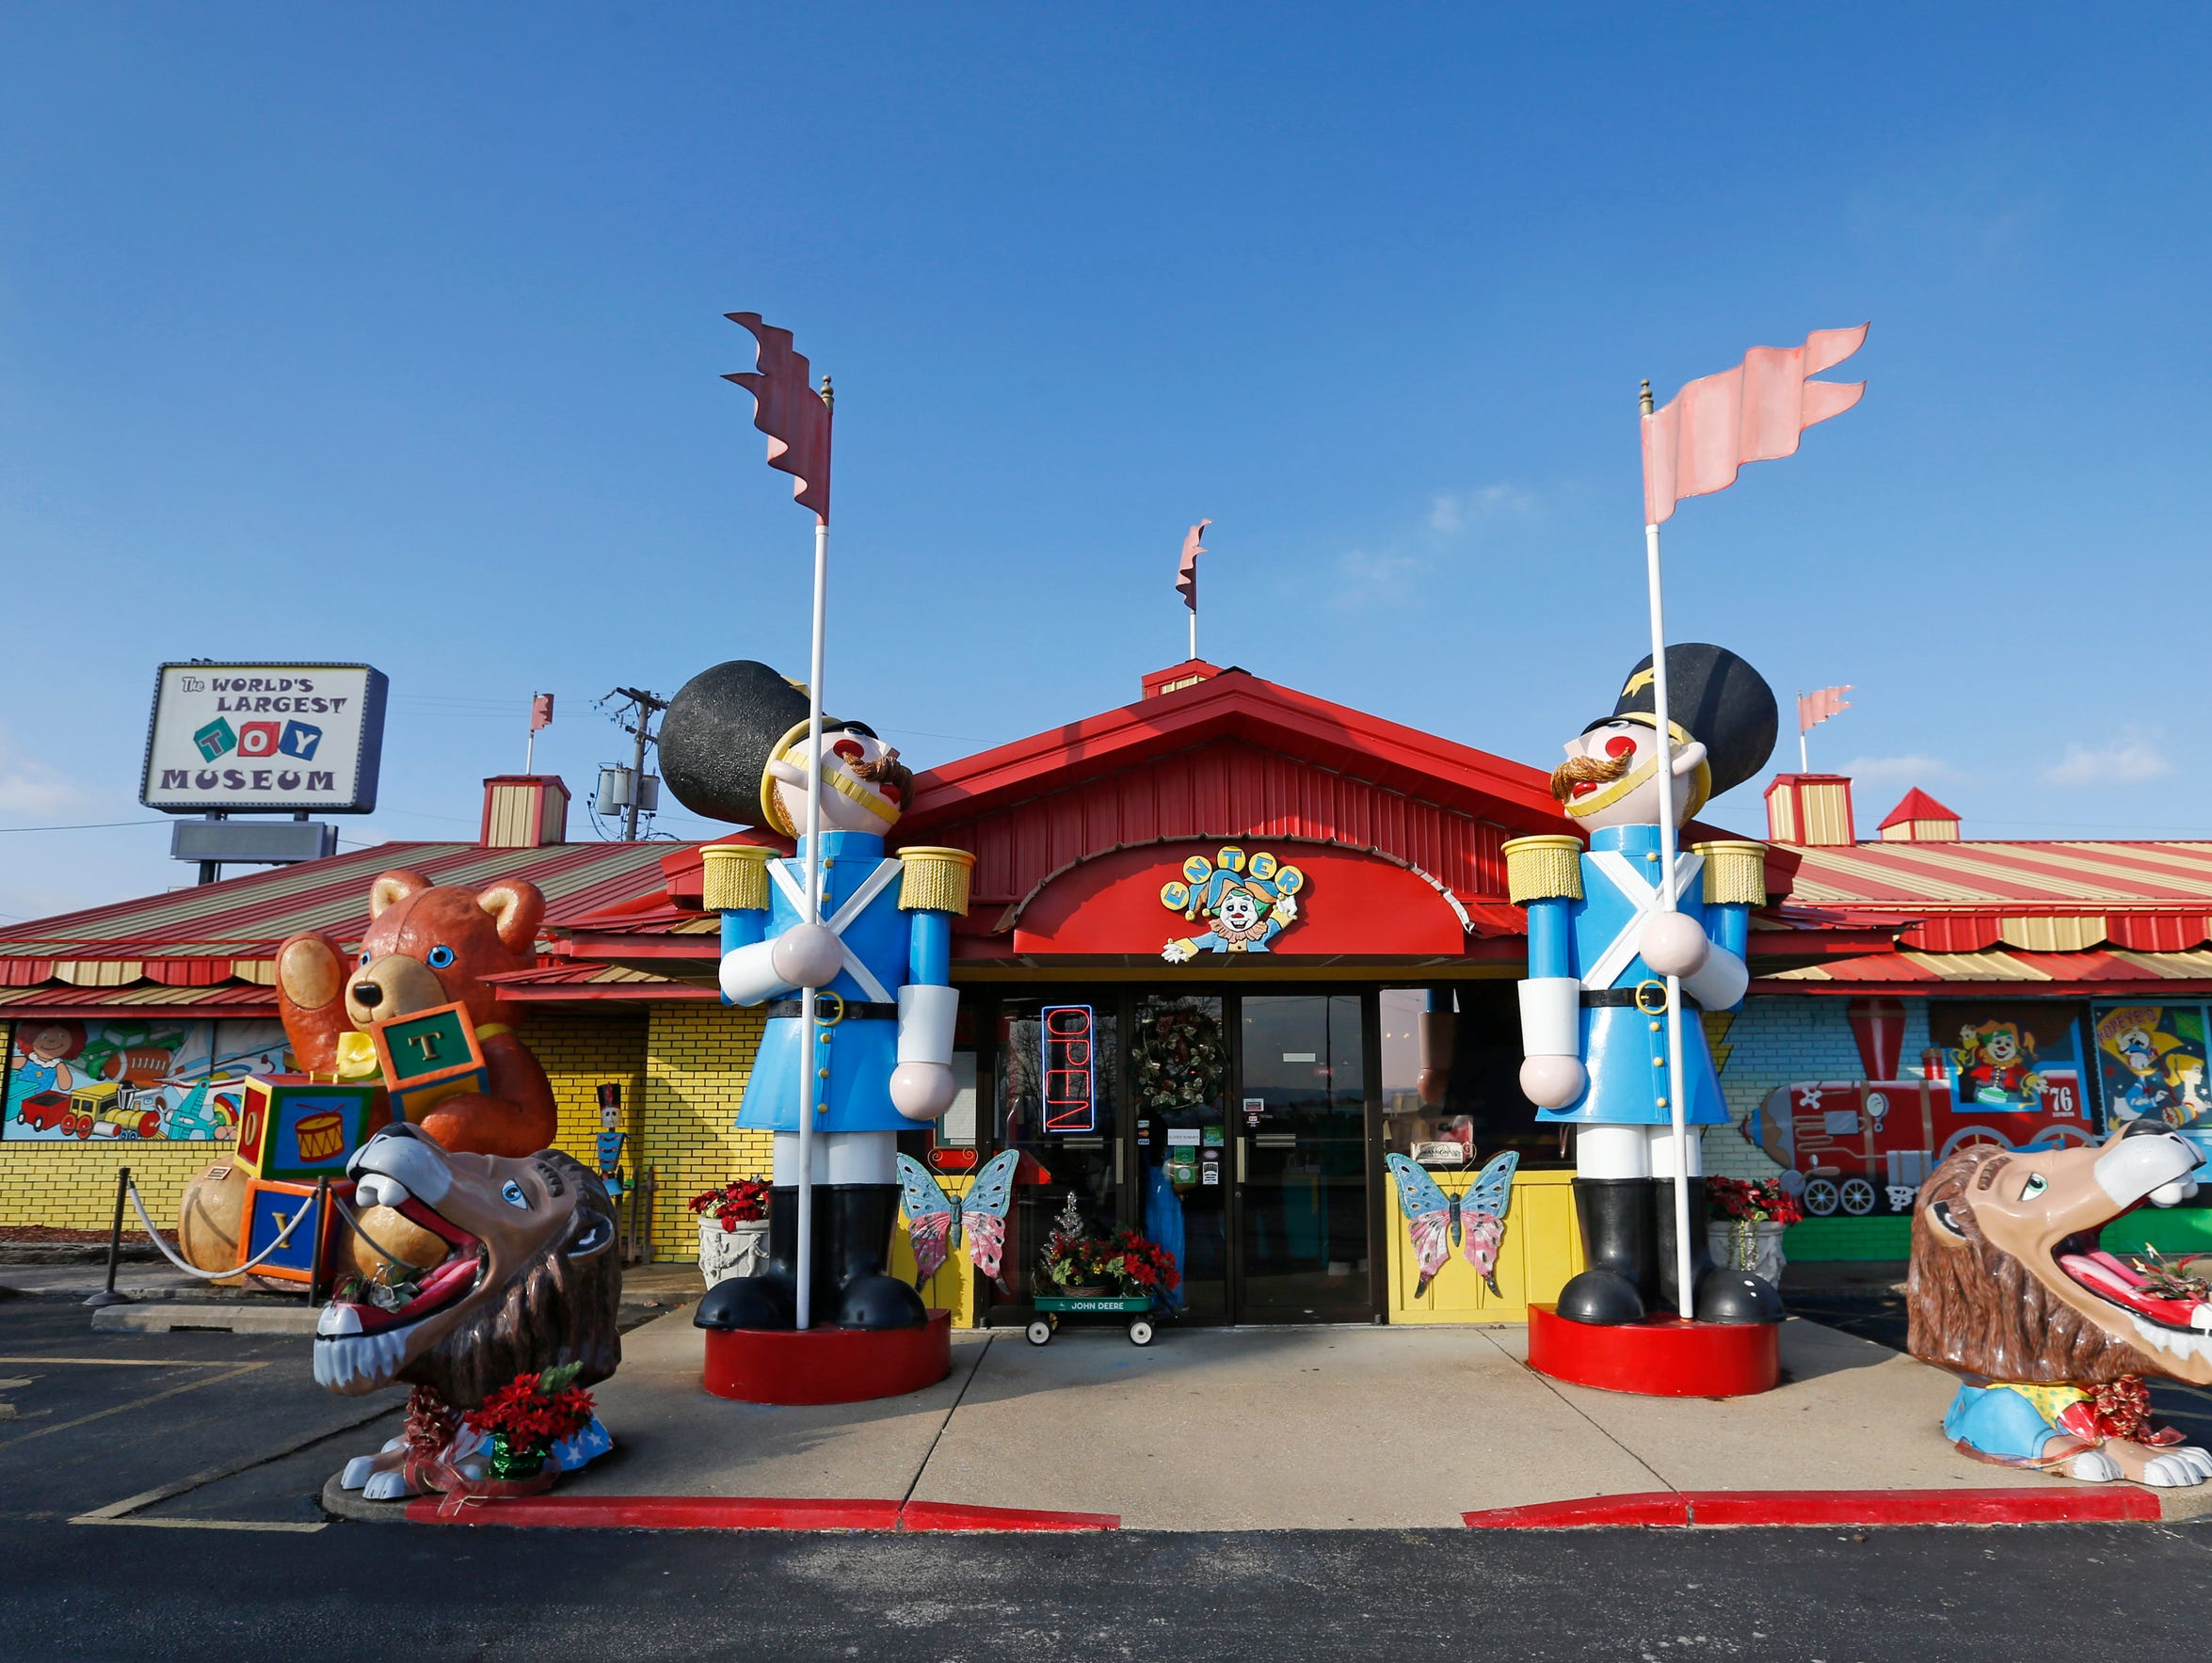 The World's Largest Toy Museum is located at 3609 W